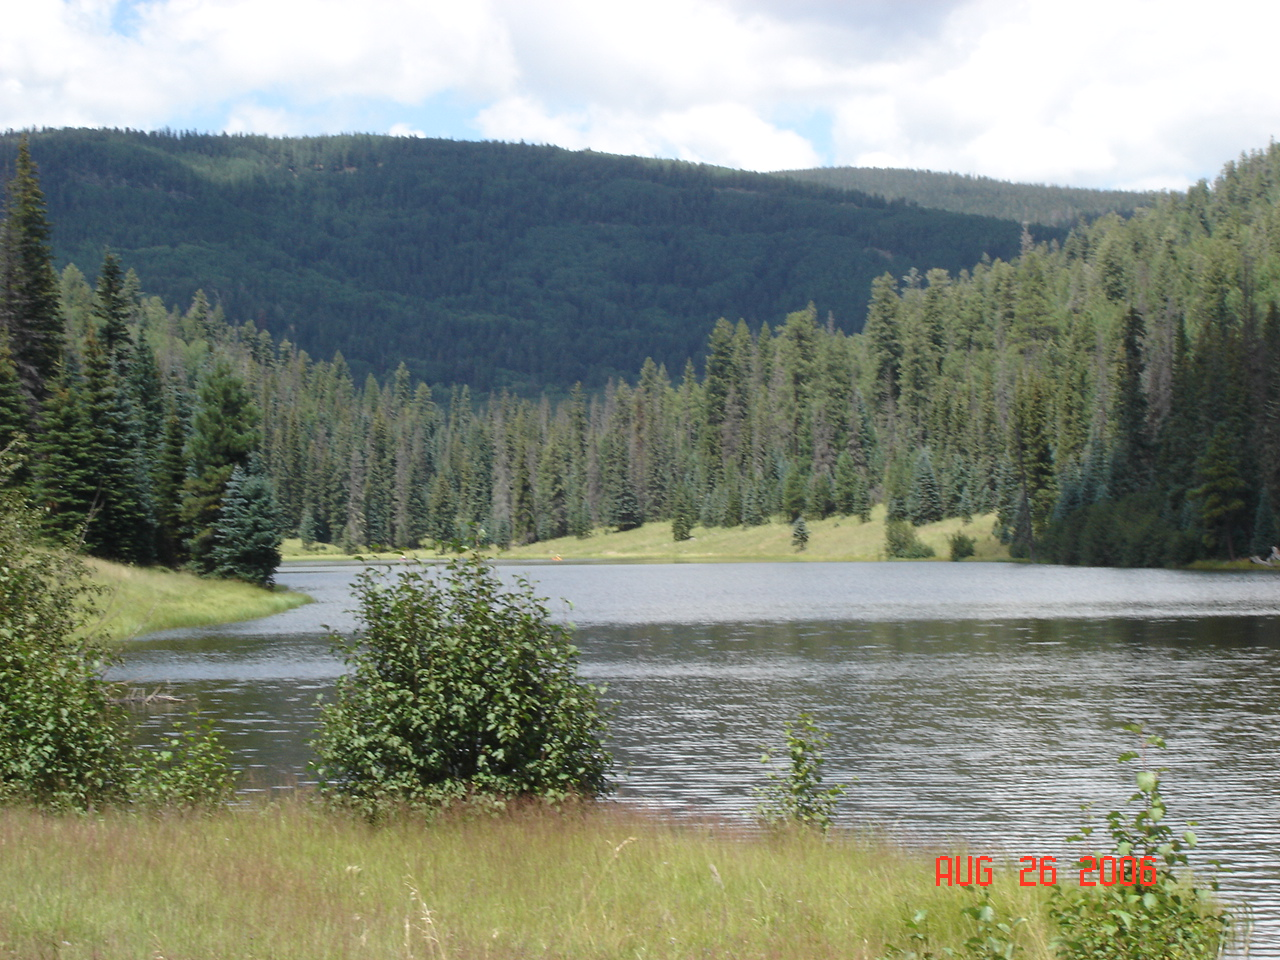 Hurricane_Lake_8-25-2006_029